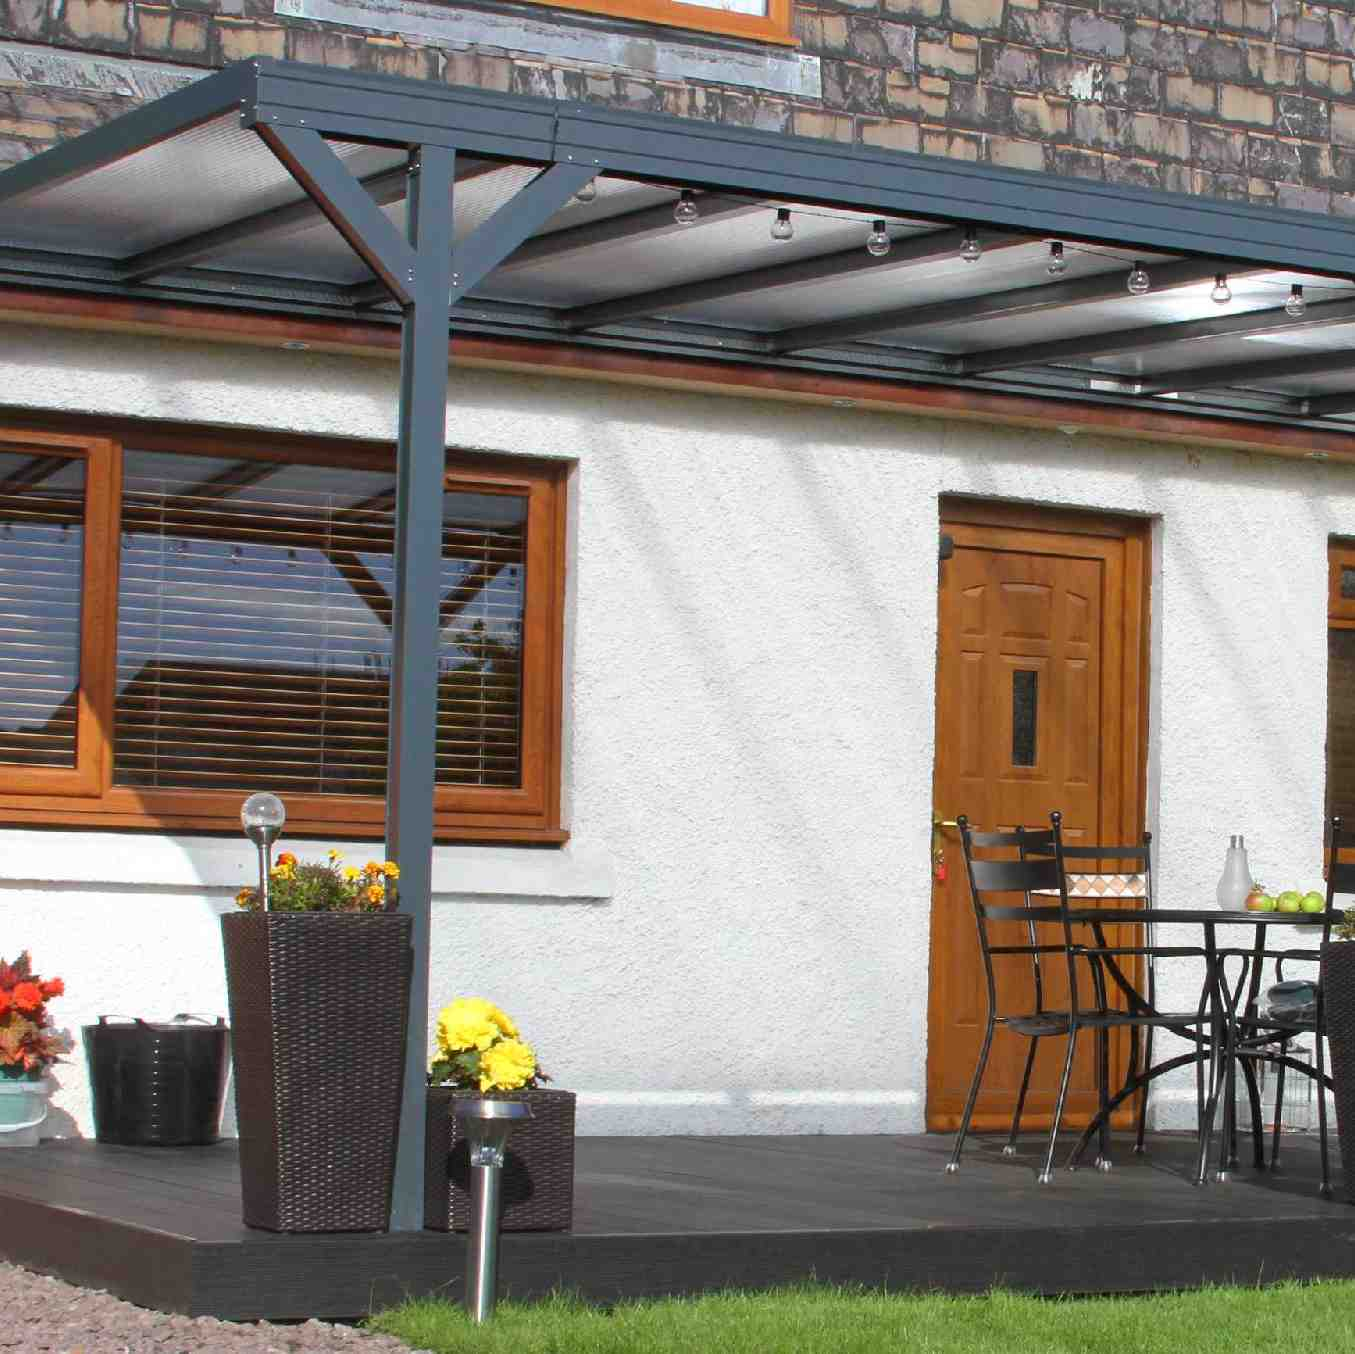 Omega Verandah, Anthracite Grey, 6mm Glass Clear Plate Polycarbonate Glazing - 9.8m (W) x 2.0m (P), (5) Supporting Posts